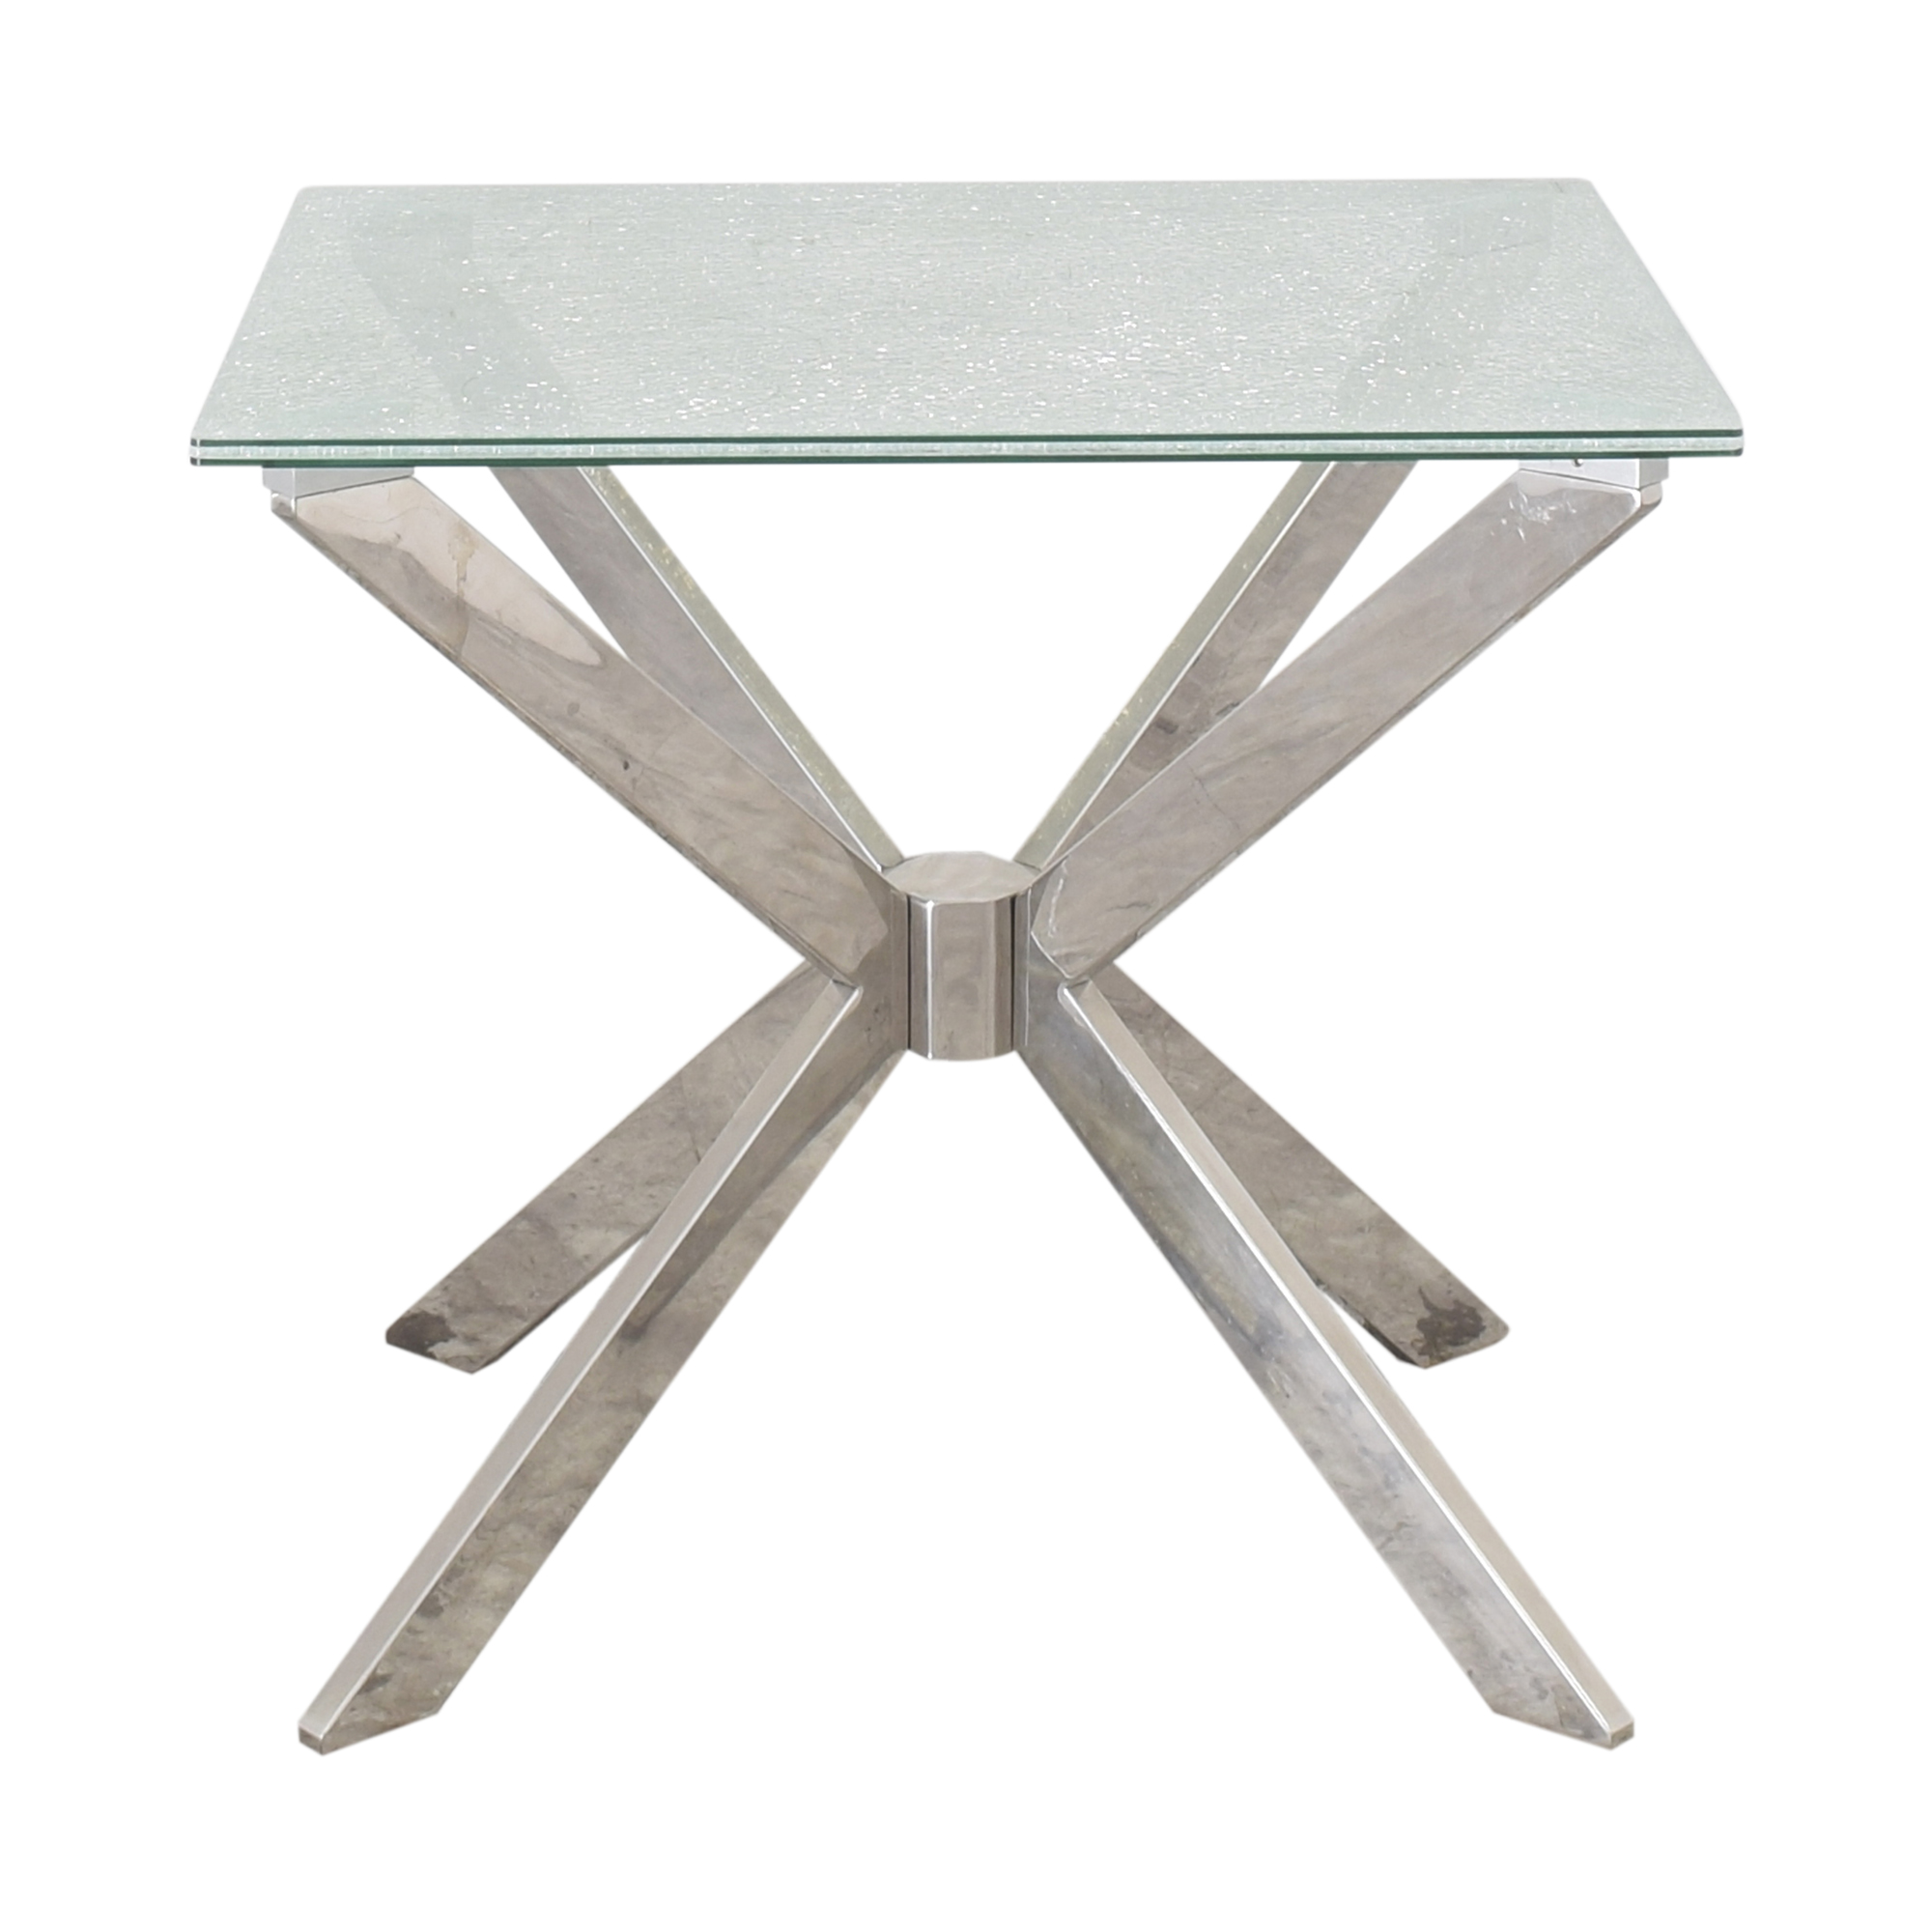 shop Raymour & Flanigan Contemporary End Table Raymour & Flanigan